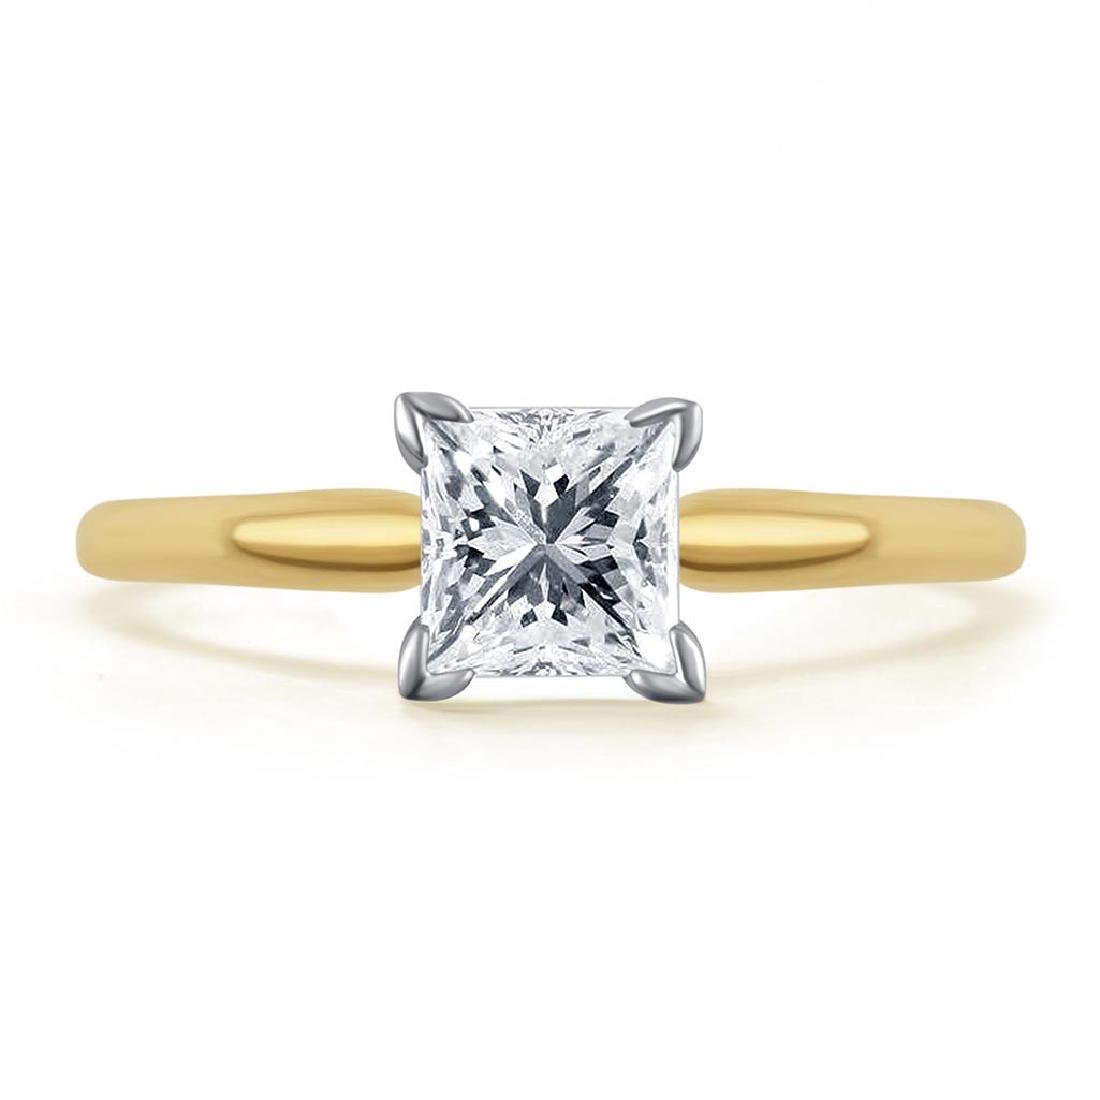 CERTIFIED 0.51 CTW PRINCESS D/VVS2 SOLITAIRE RING IN 14